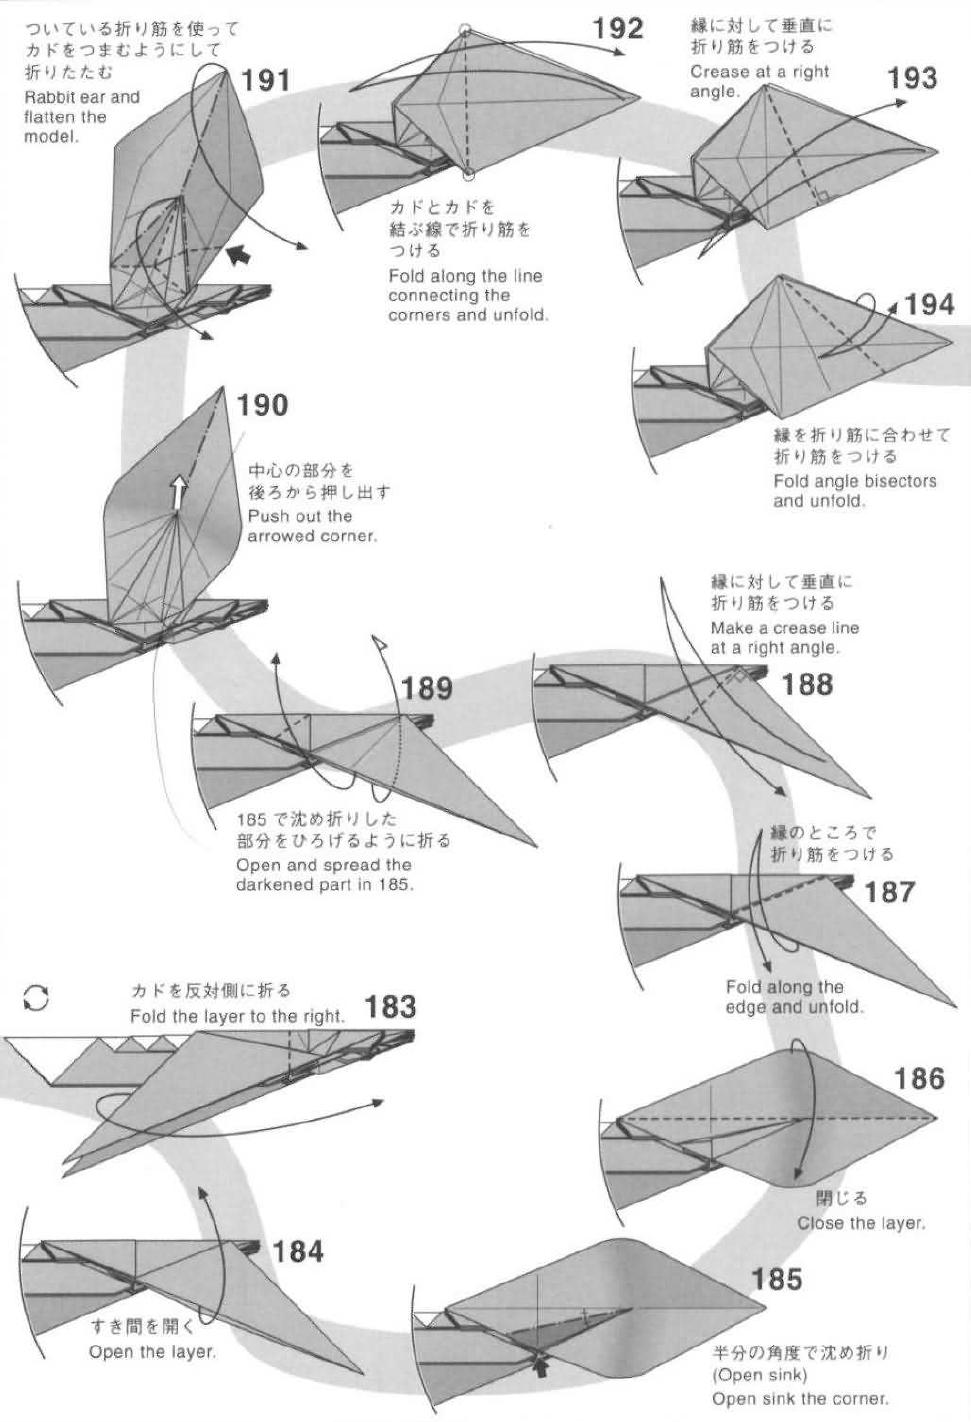 Eastern Dragon Origami Diagram Electrical Wiring Origamichinesedragondiagram Chinese How To De Affordable Recuerden Que Practicando Es Easy